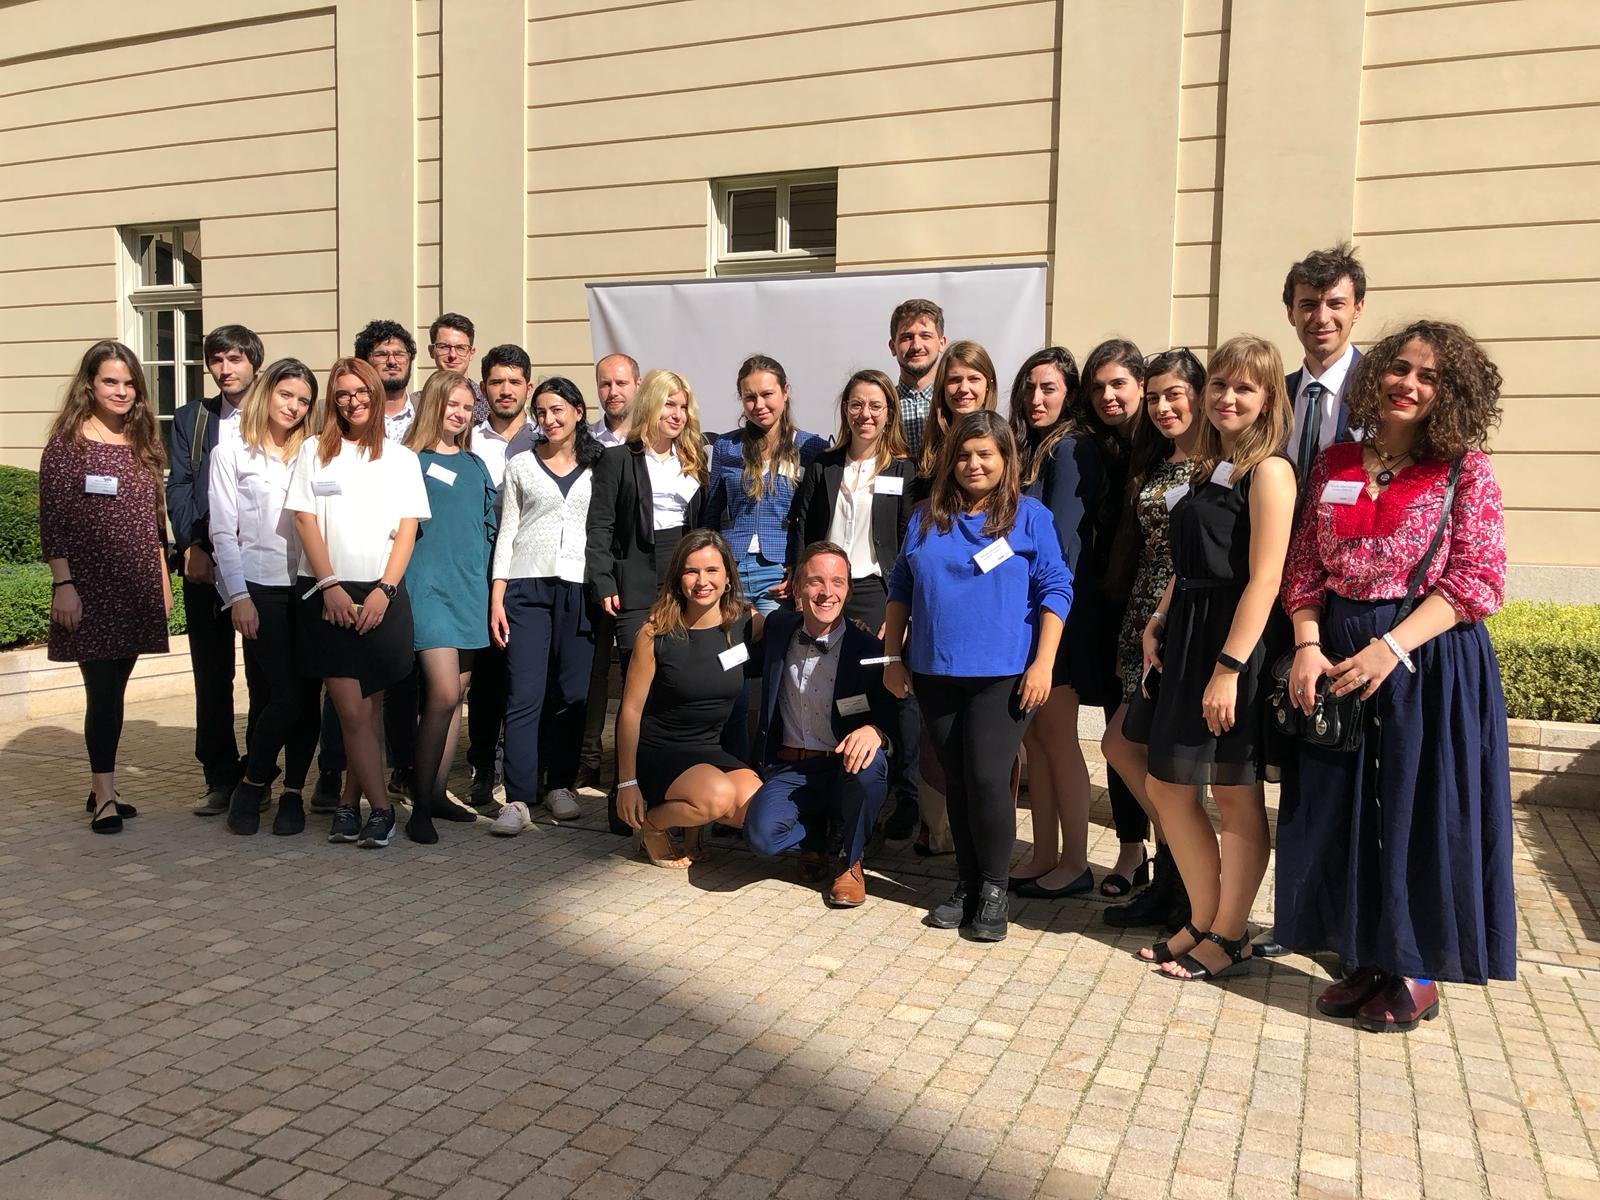 M100 Young European Journalists at the M100 Sanssouci Colloquium 2018